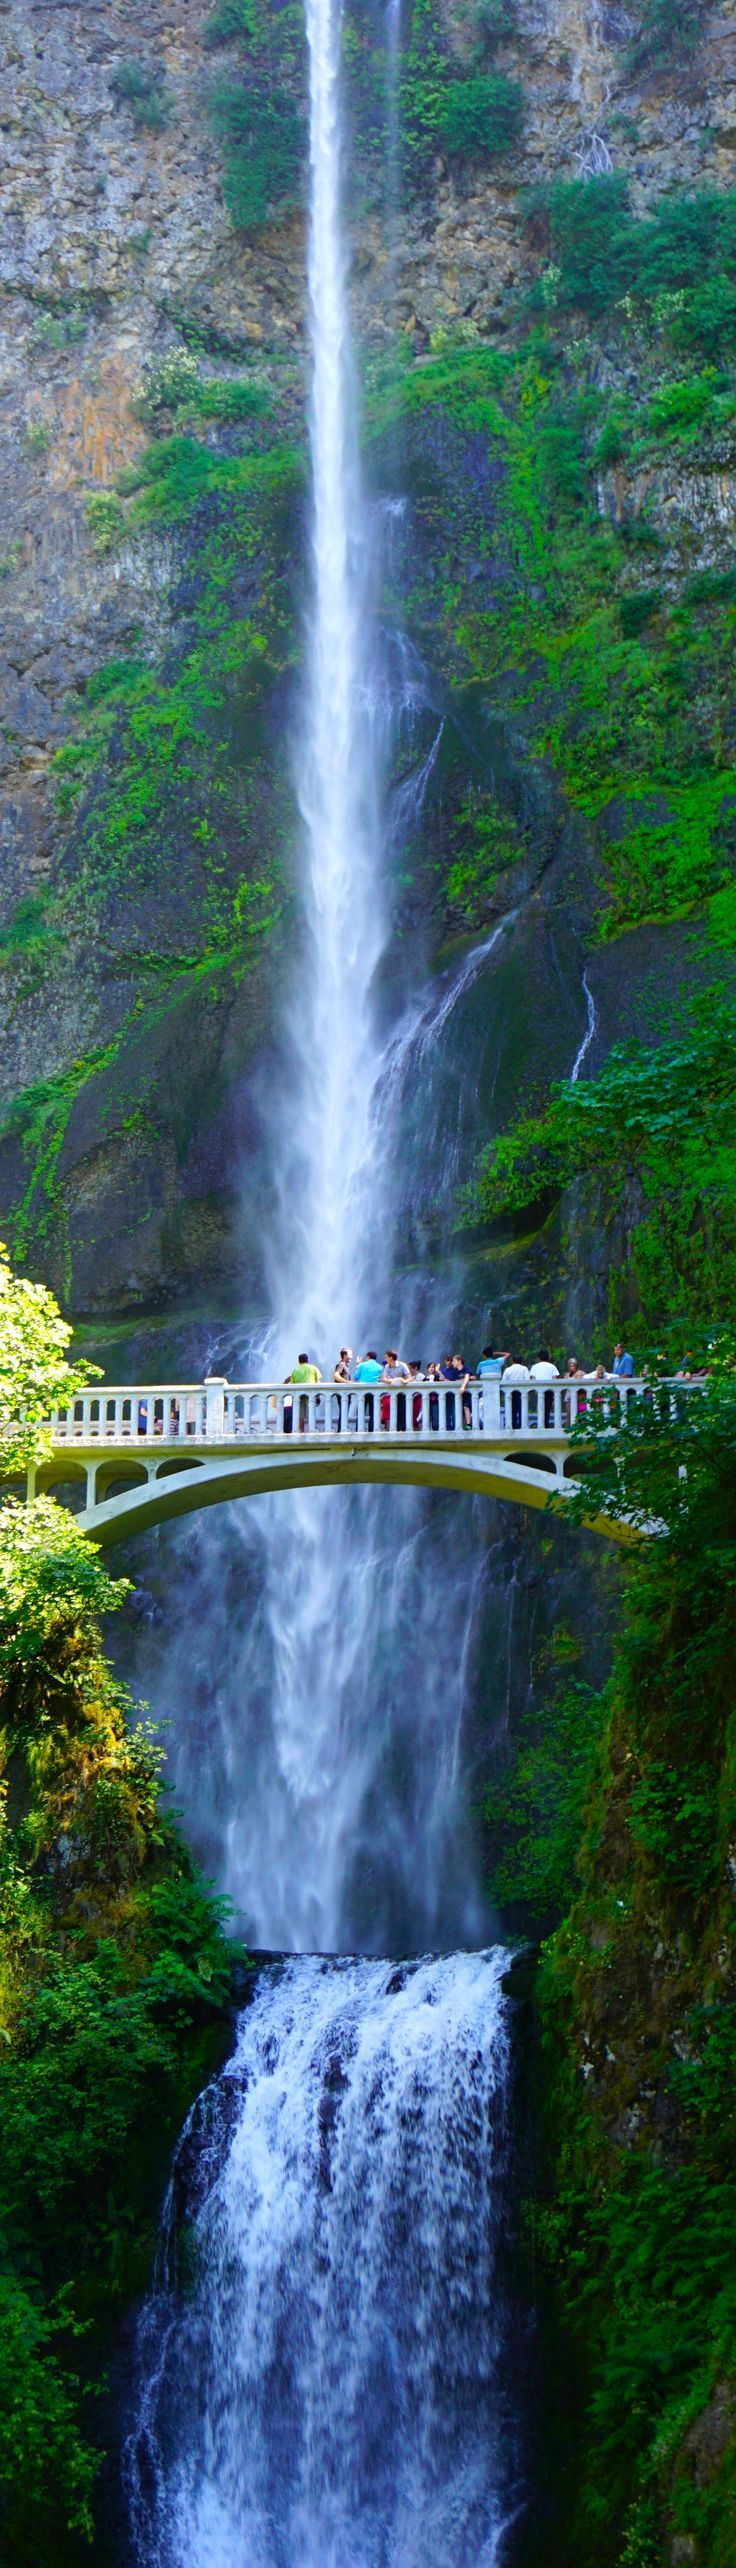 Best Places To Travel And Tourist Spots To Visit Images On - 51 incredible places visit die